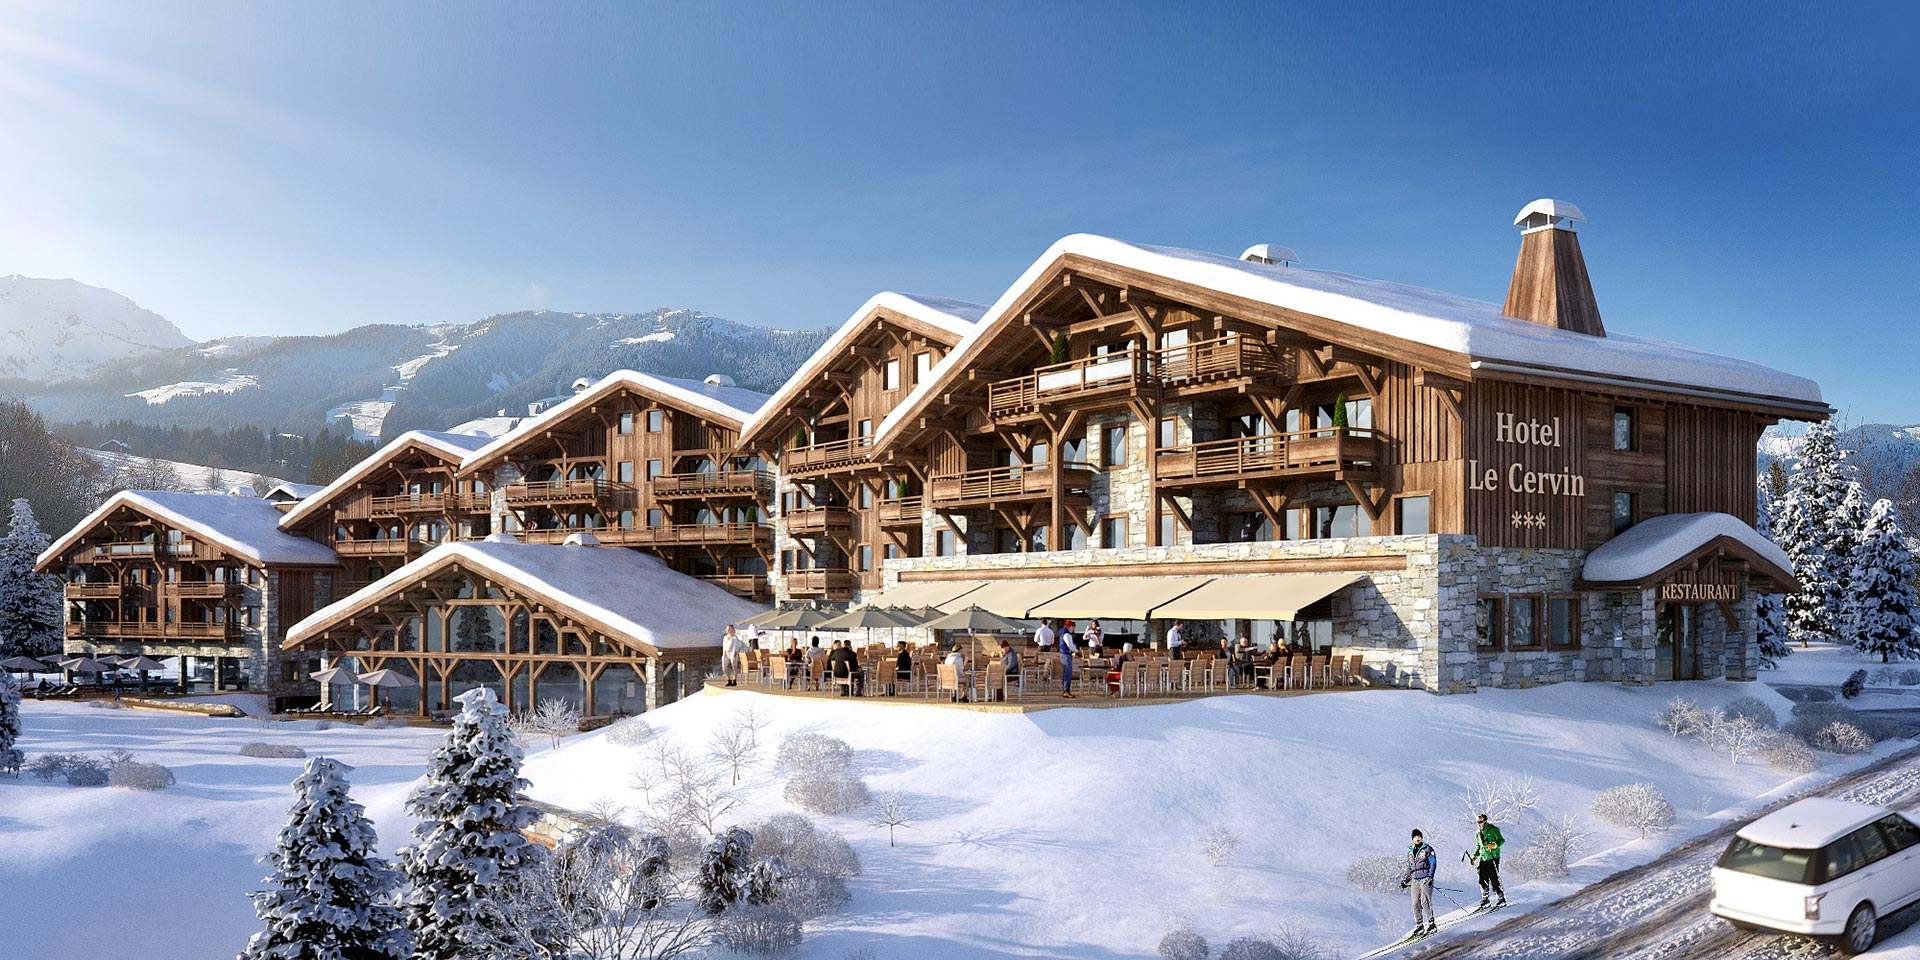 3D perspective overview of a hotel in a snowy landscape